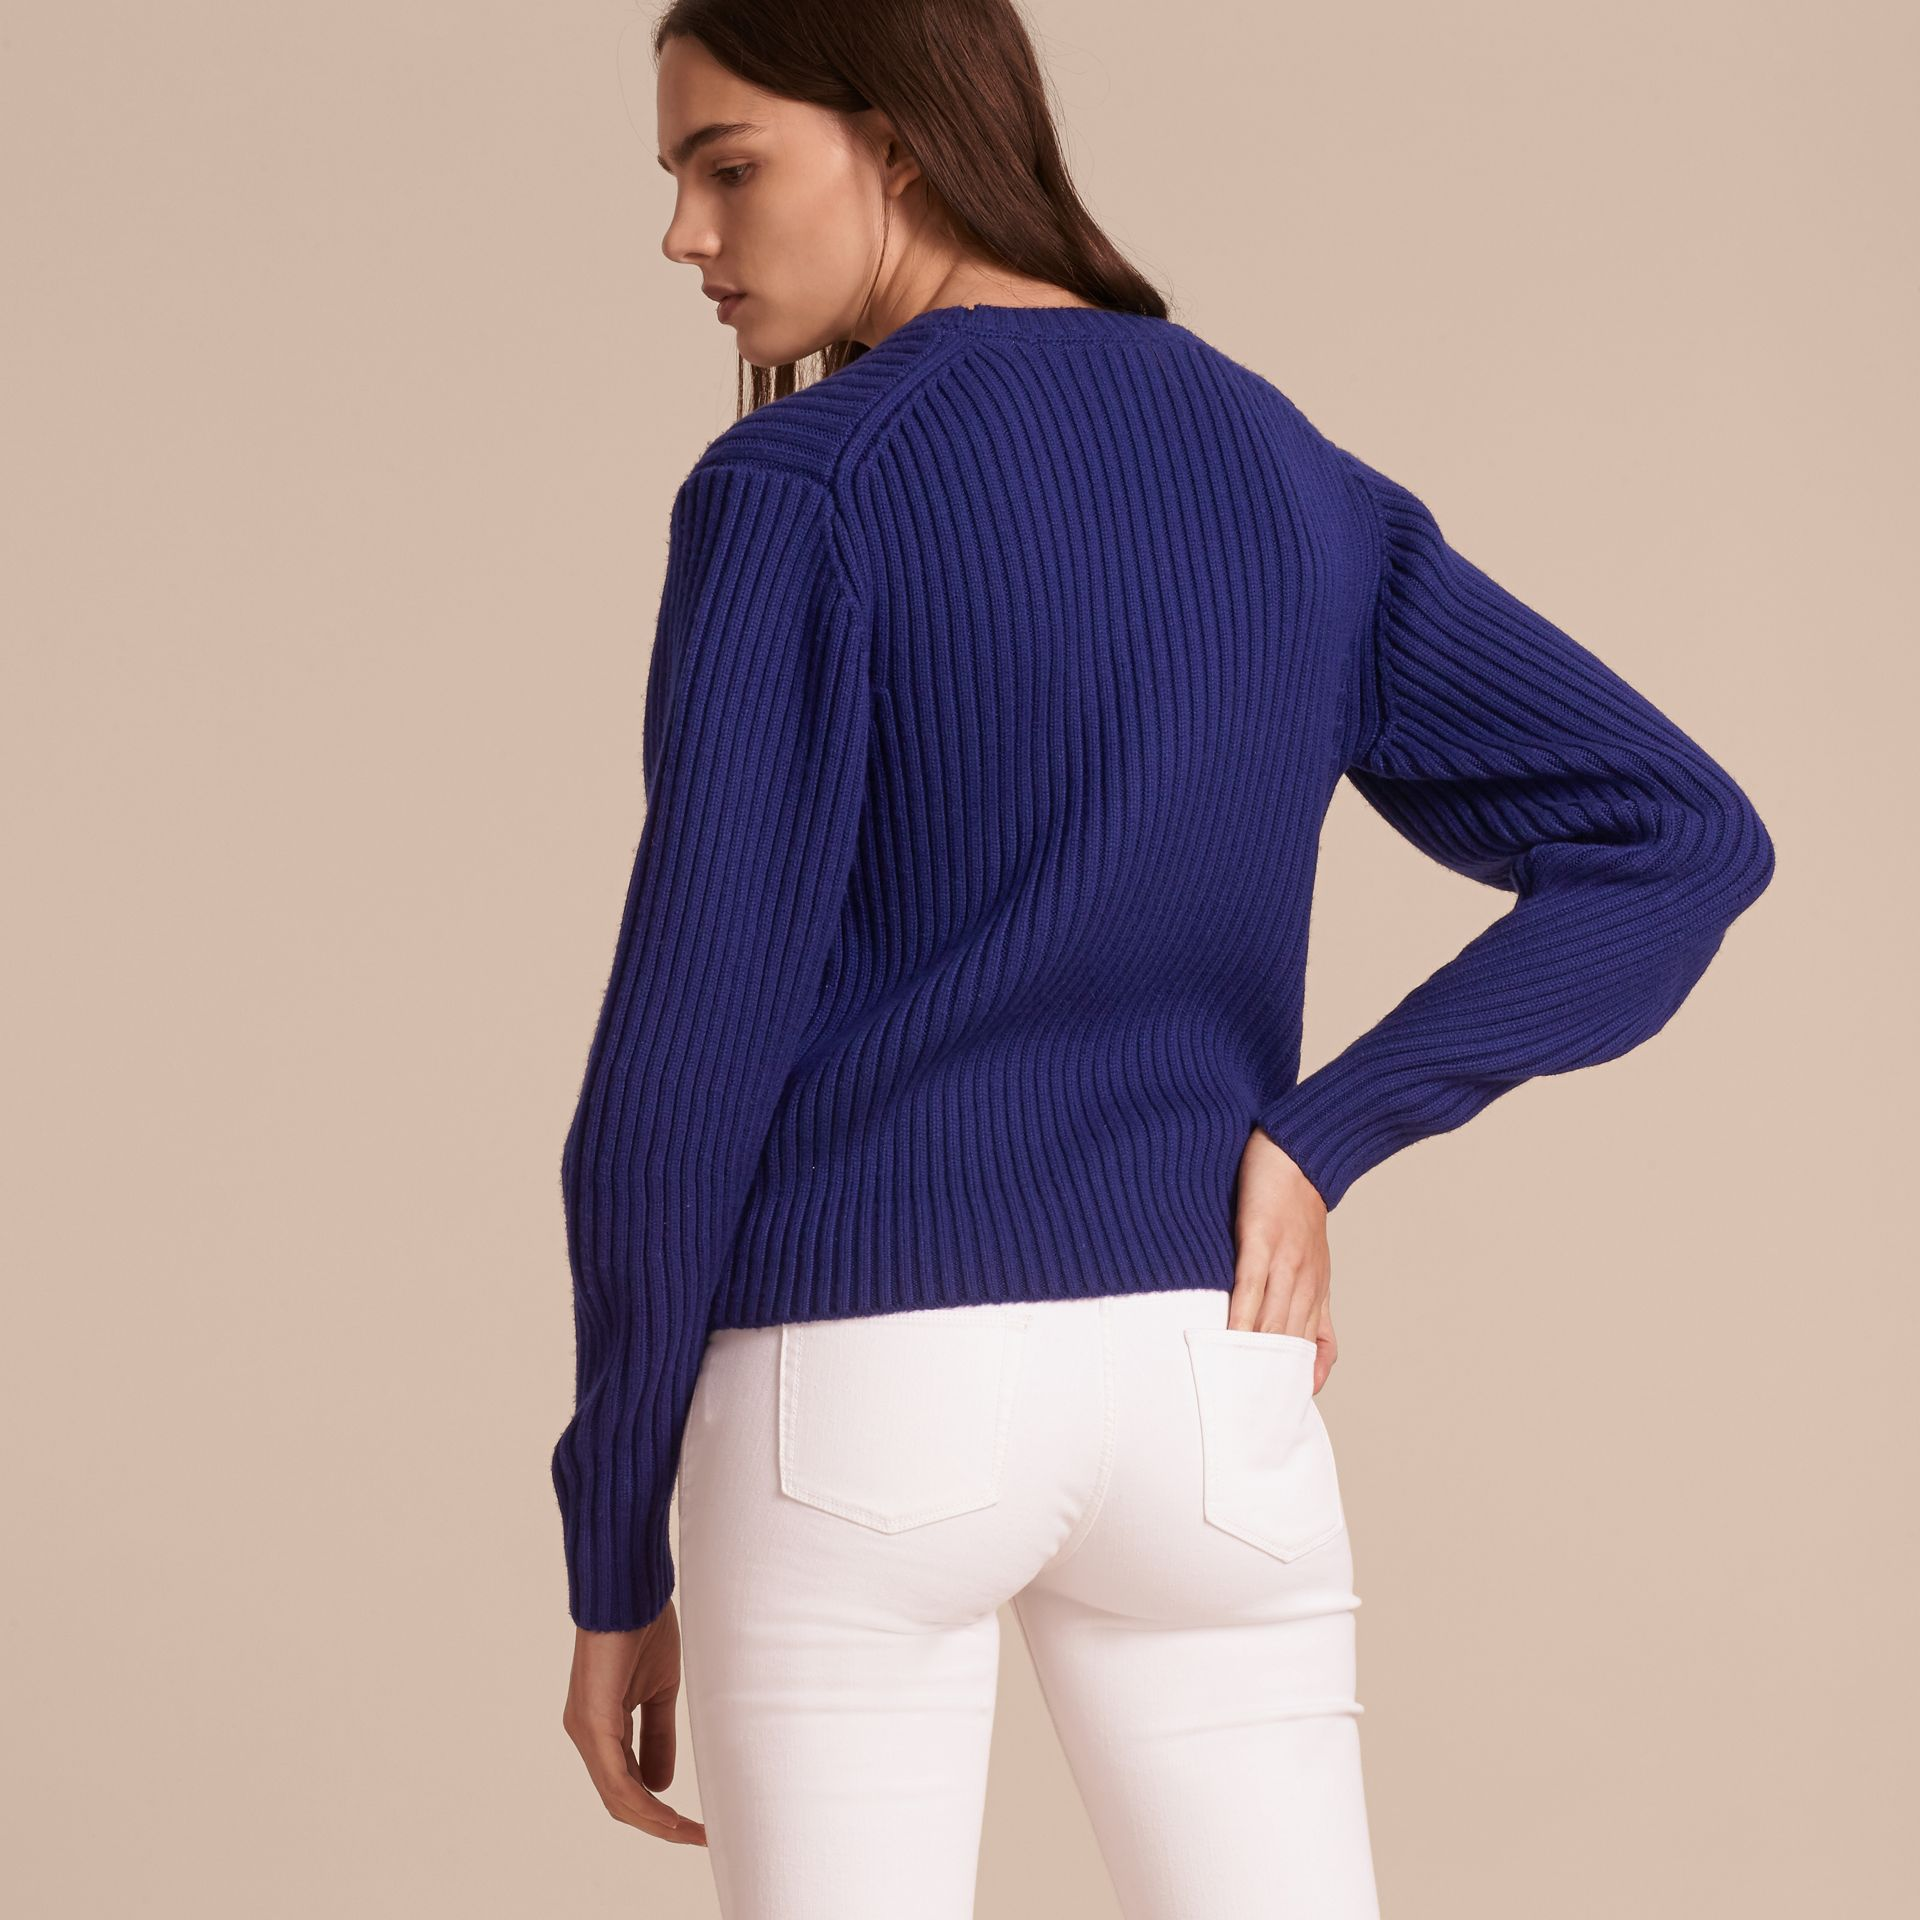 Oversize Pocket Detail Rib Knit Cashmere Cotton Sweater - gallery image 3